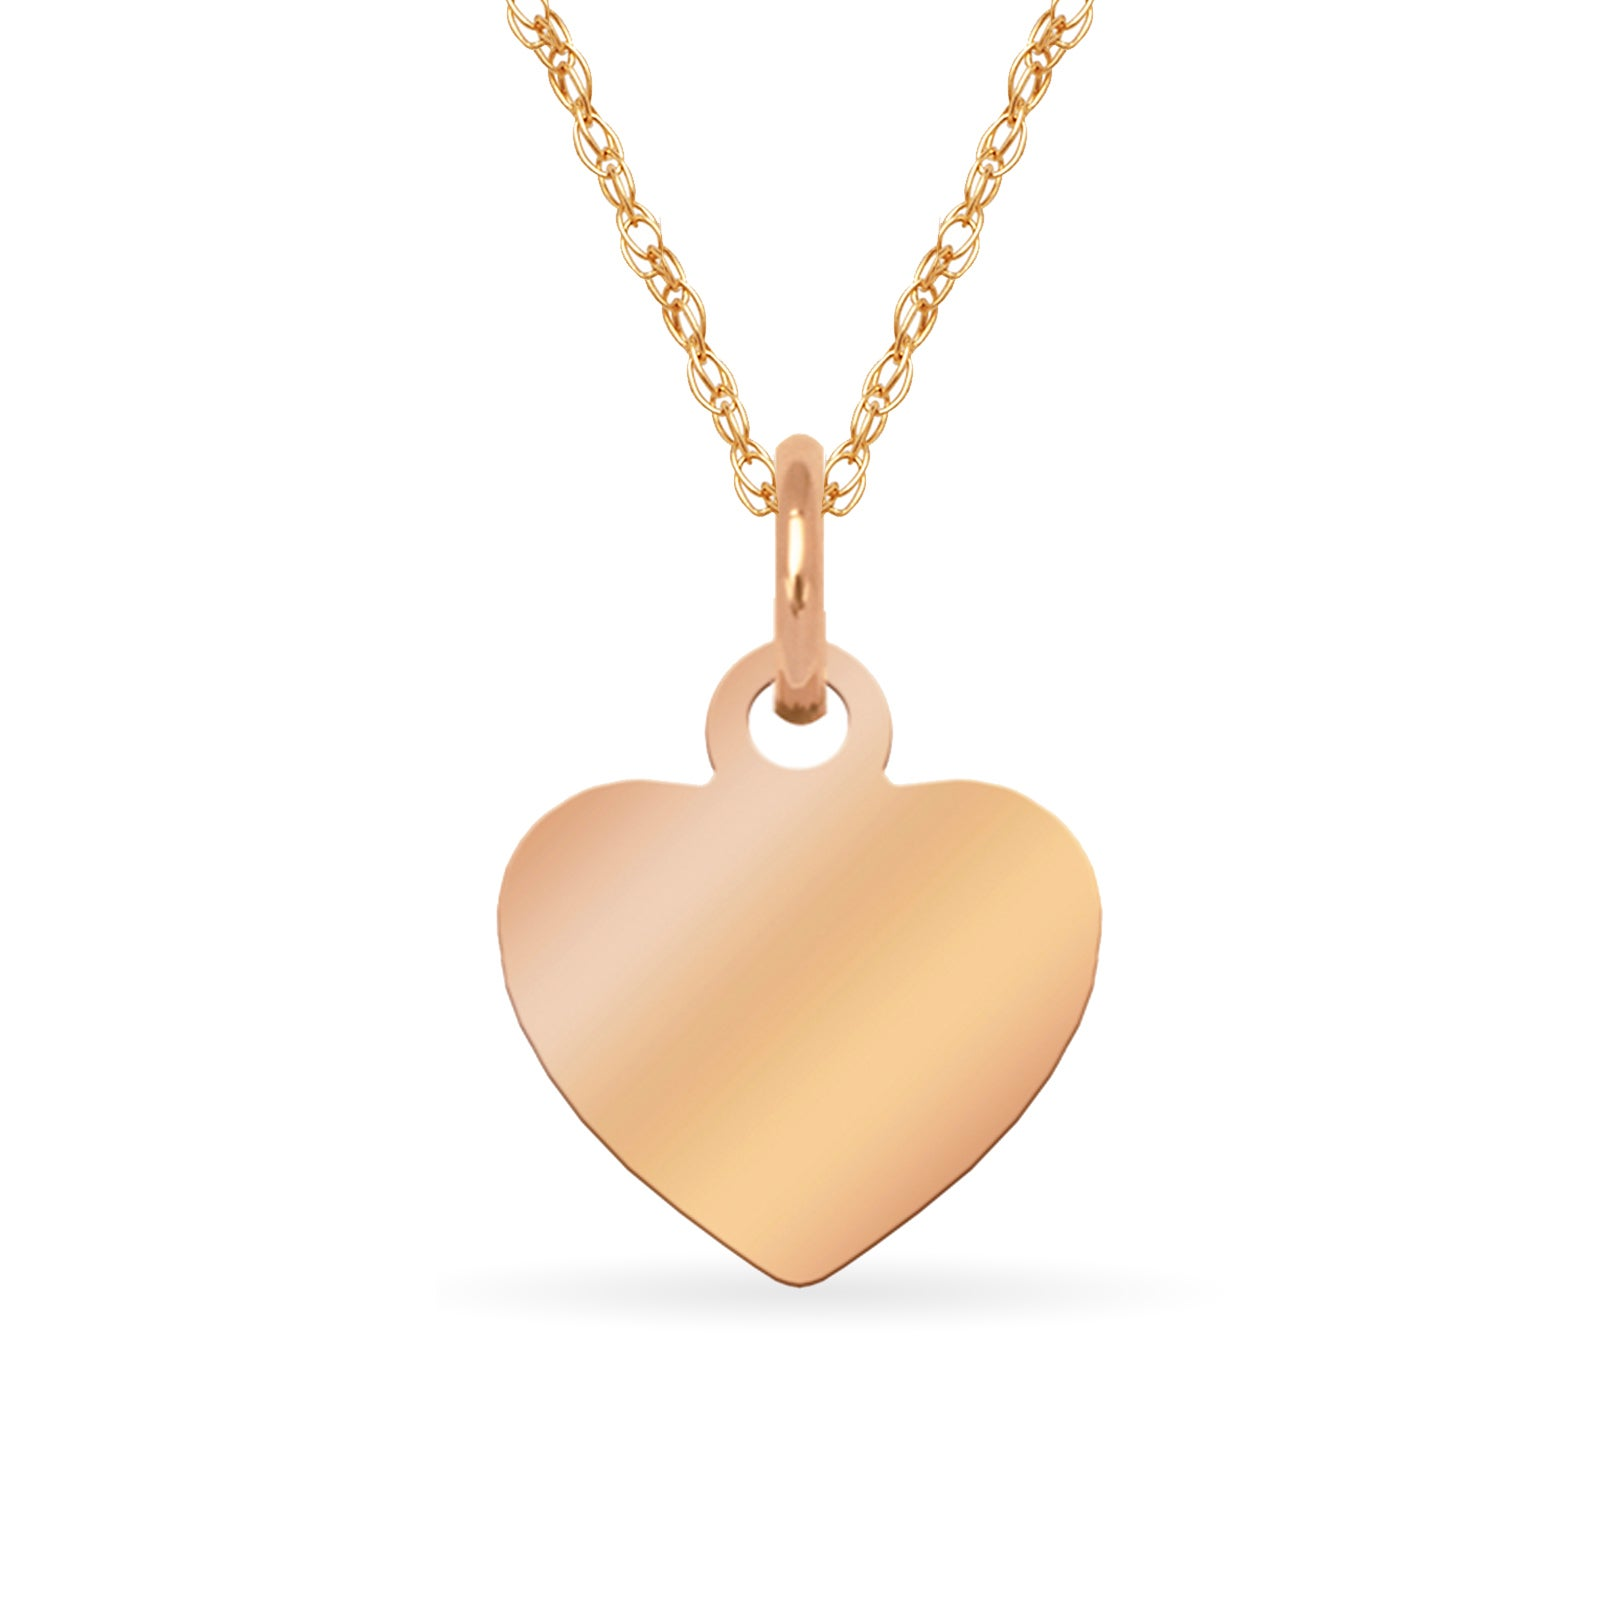 Small Puffed Heart Pendant Solid 14k White Gold Love Charm Polished Tiny Cute